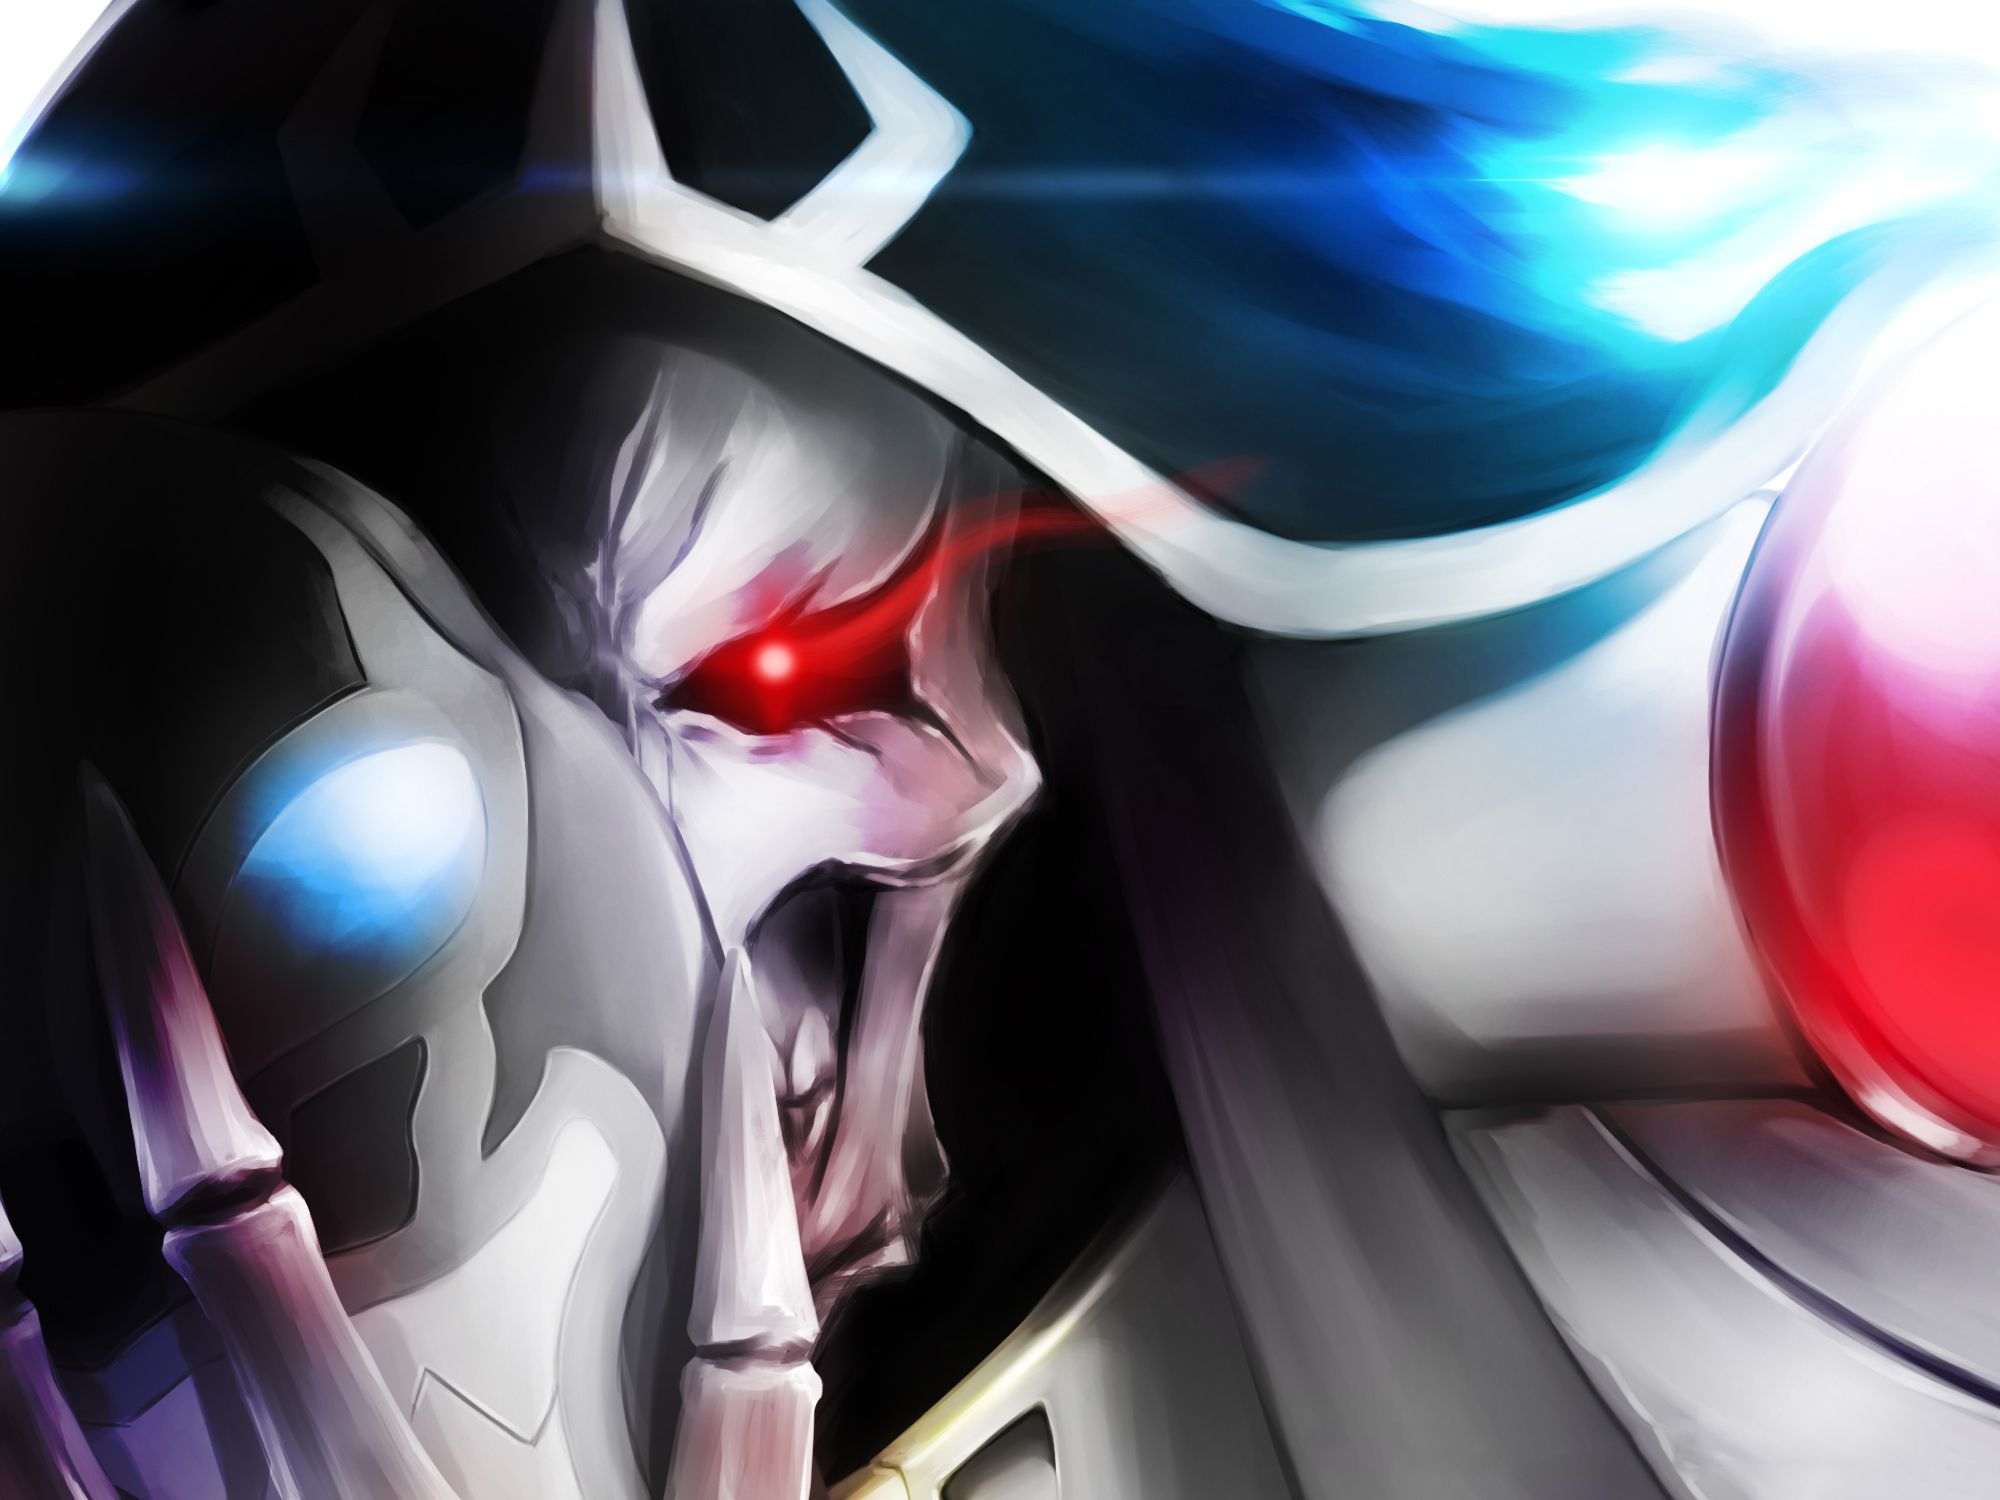 Anime Overlord Ainz Ooal Gown Overlord Wallpaper Hd